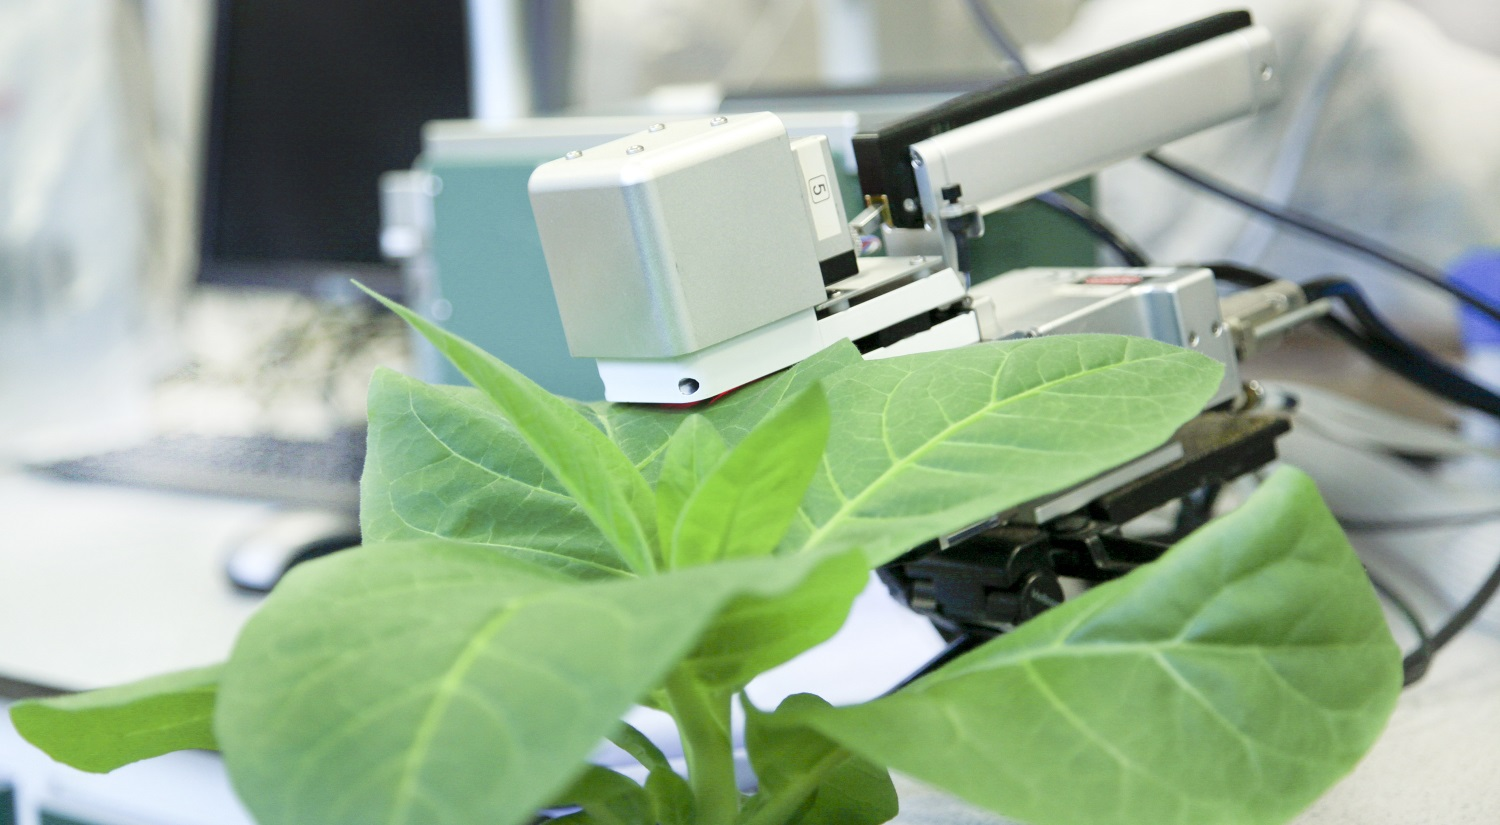 A LiCOR 6400 Infra-Red Gas Analyser (or IRGA) attached to a tobacco leaf.